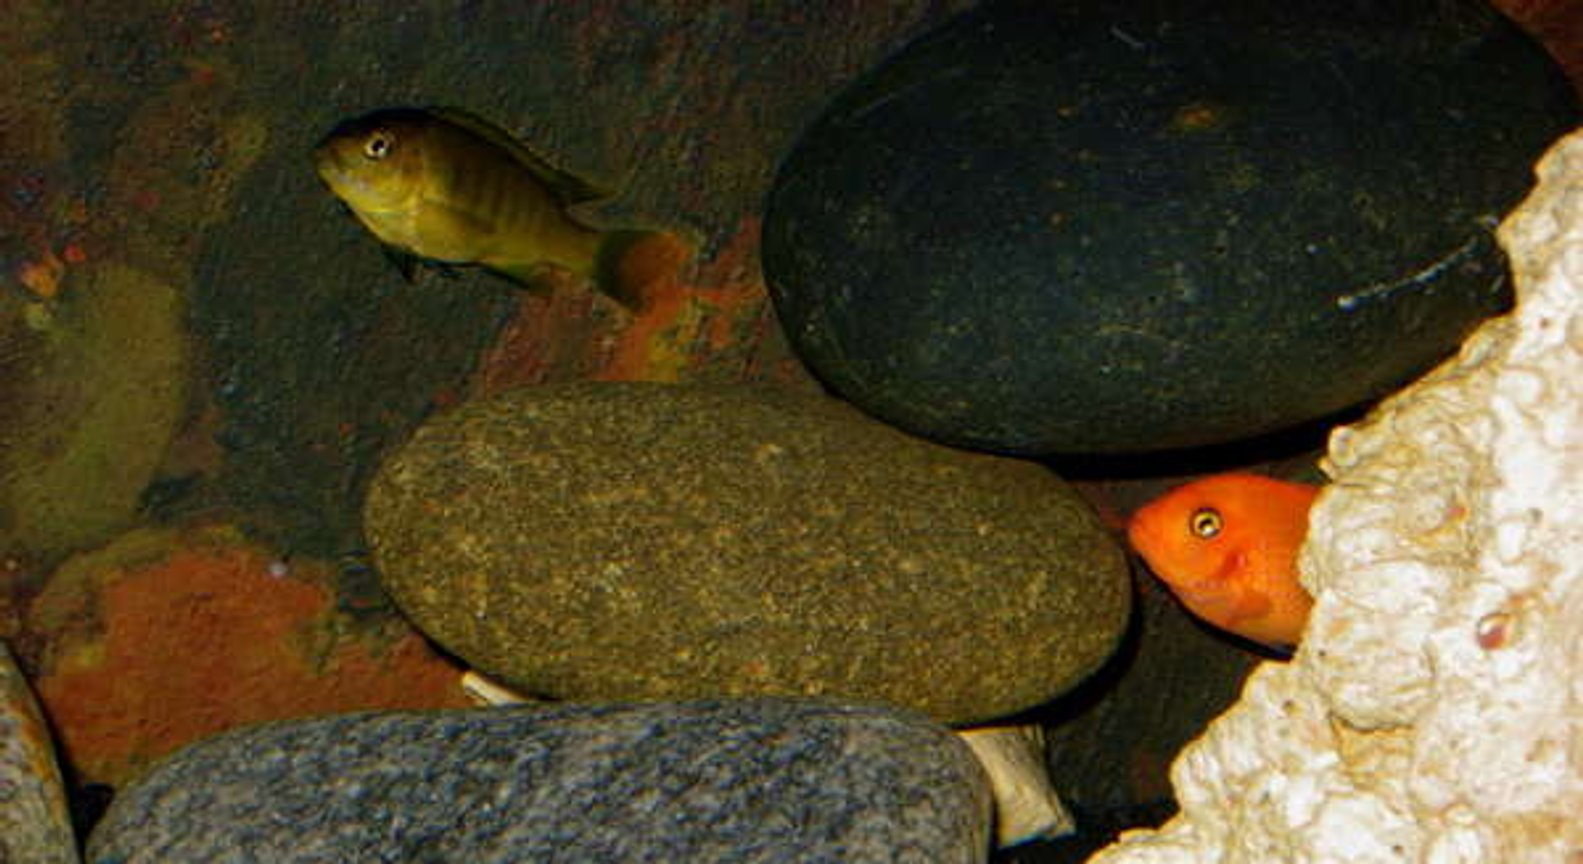 freshwater fish - pseudotropheus estherae - red zebra cichlid stocking in 32767 gallons tank - Mbuna Cichlid Aquarium